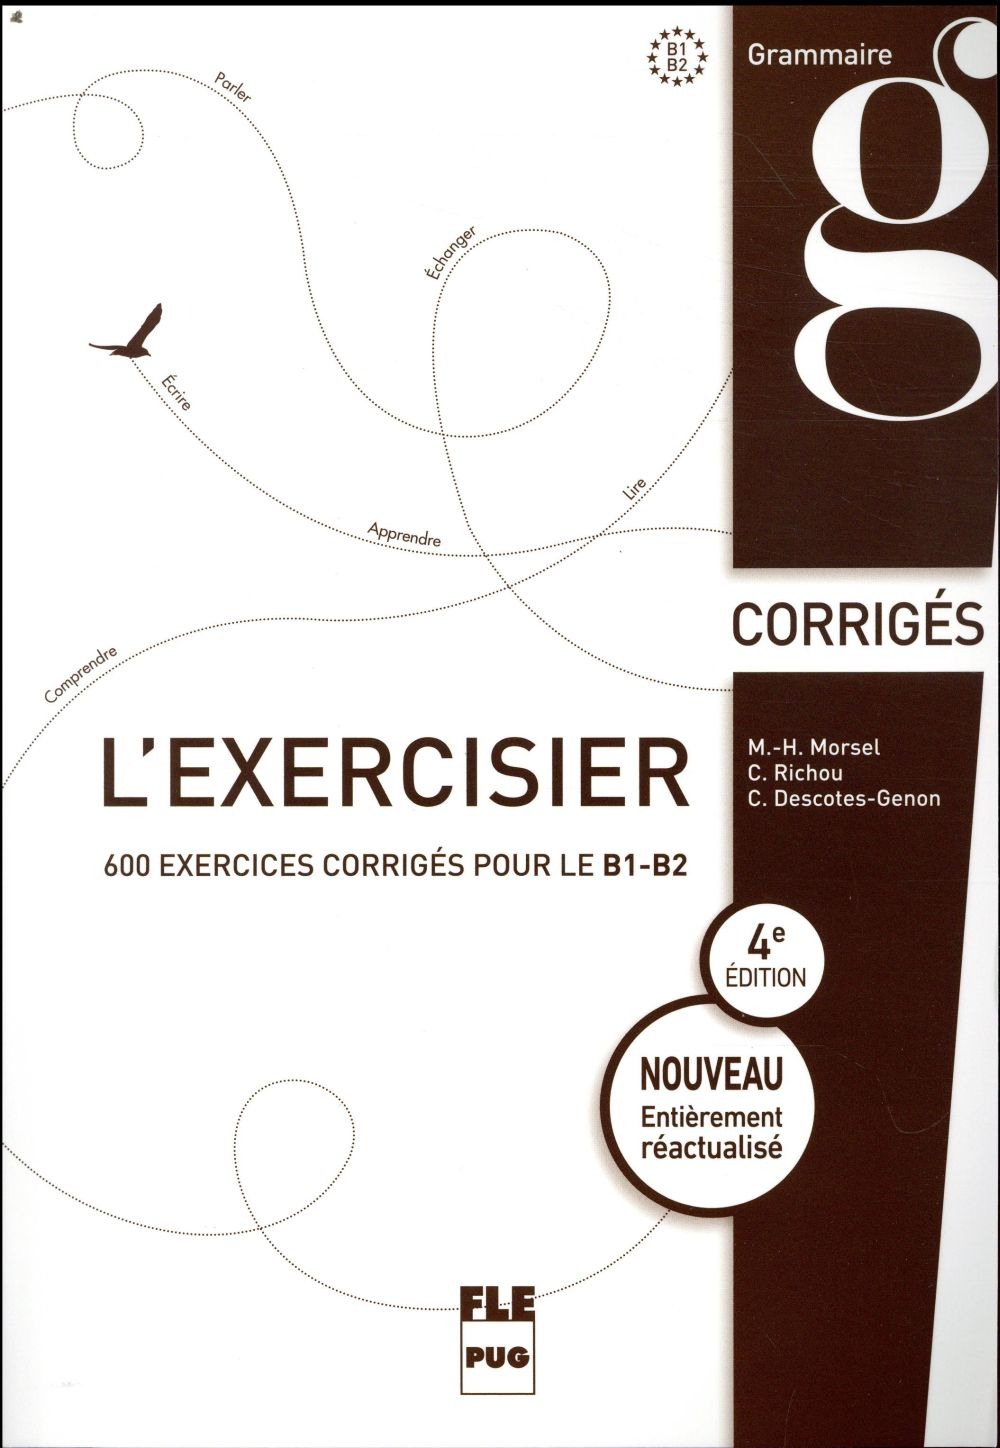 L'exercisier; corrigés des exercices